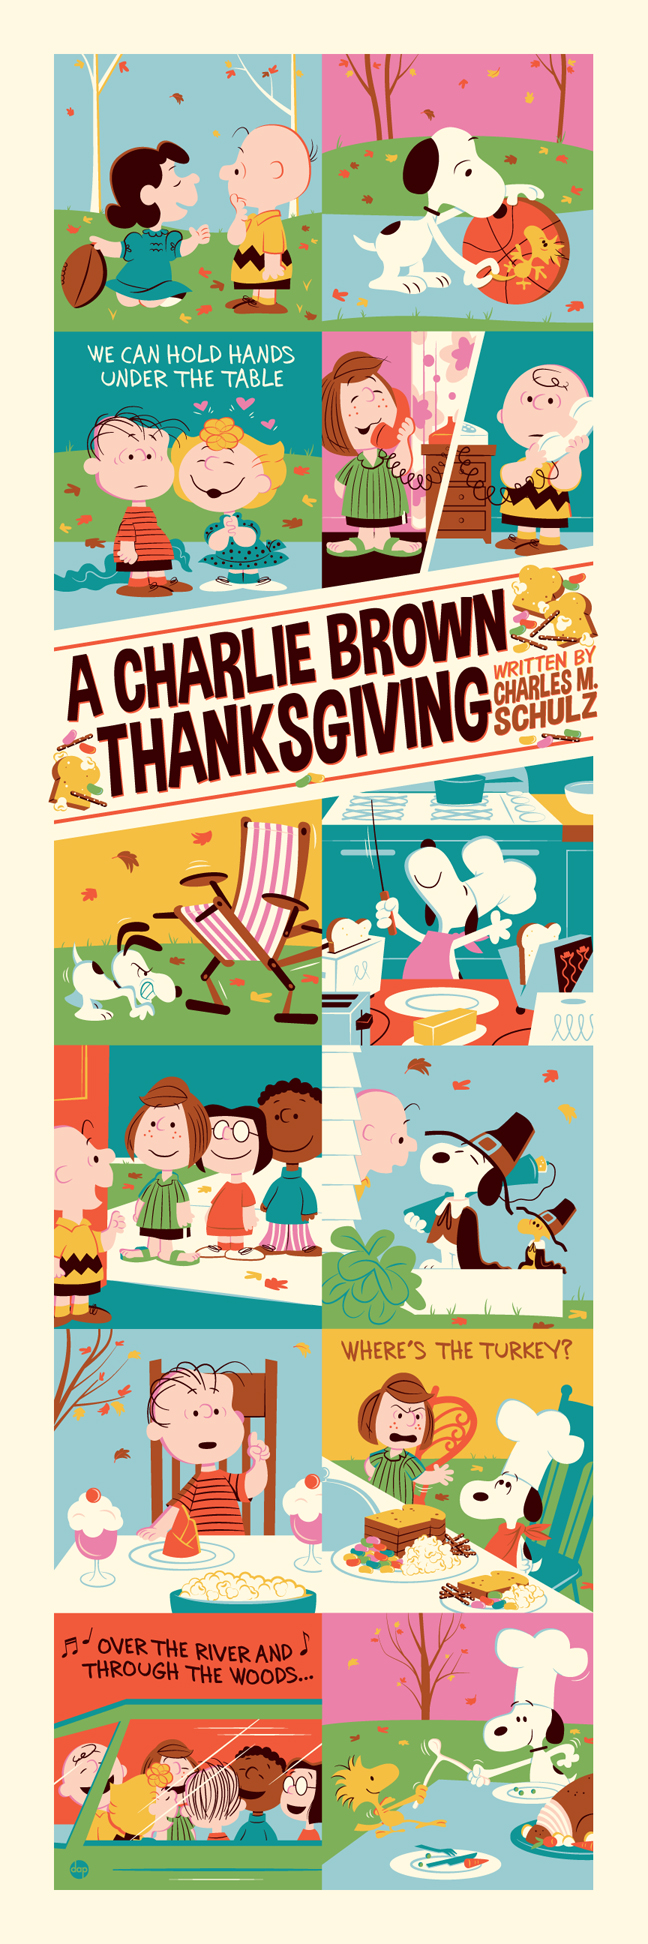 perillo-A-Charlie-Brown-Thanksgiving